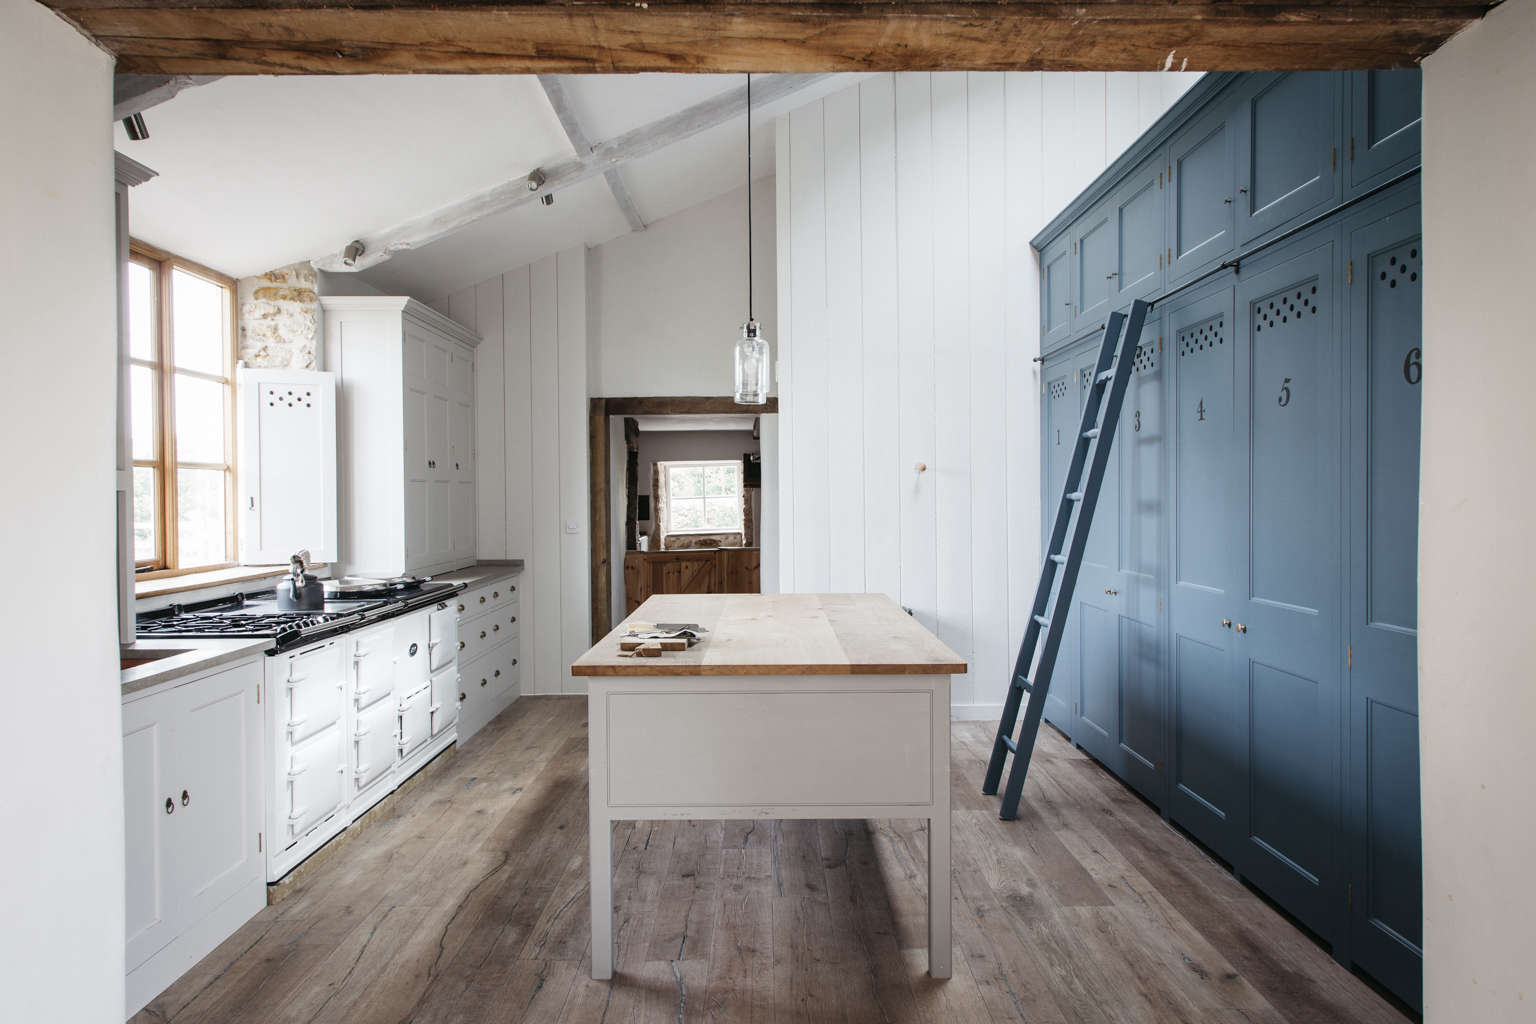 Blue kitchen cabinets in a modern spin on a classic English kitchen by Plain English